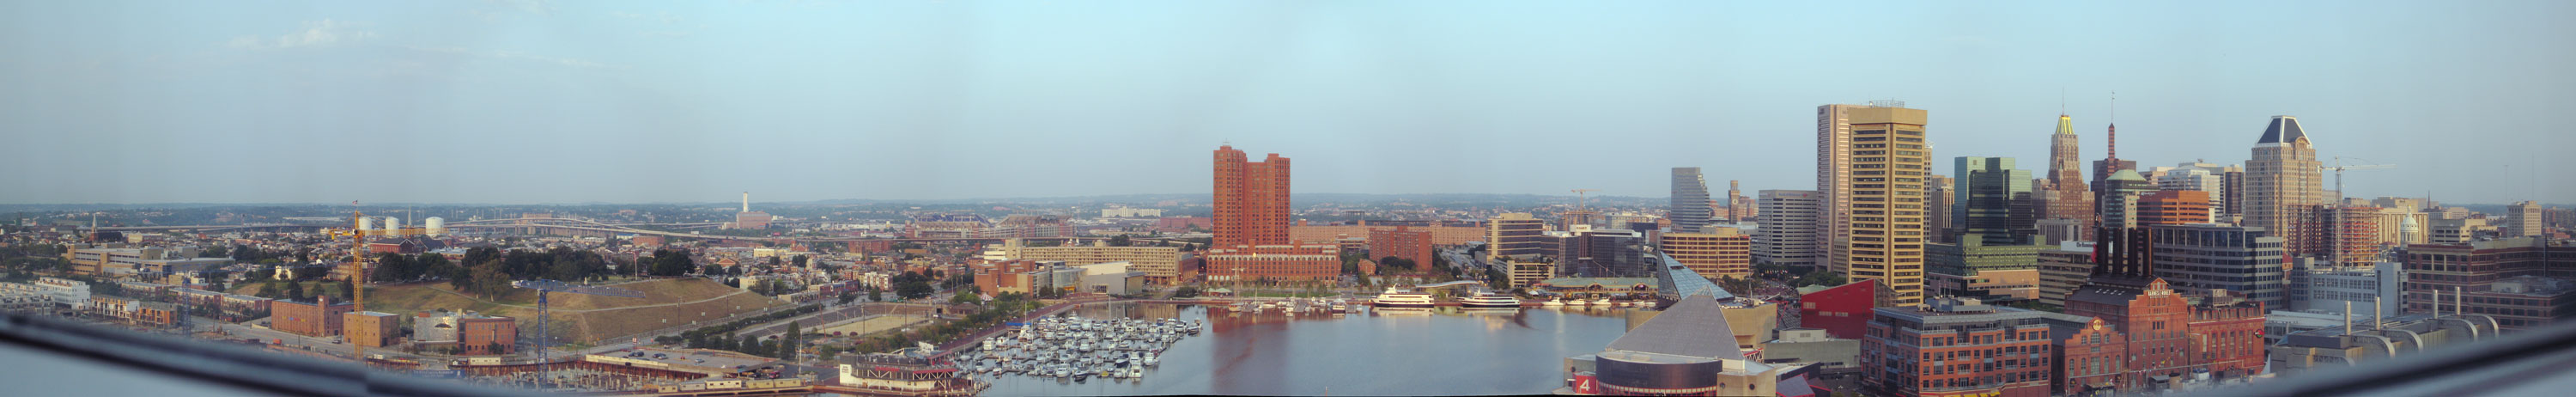 View from my hotel in Baltimore